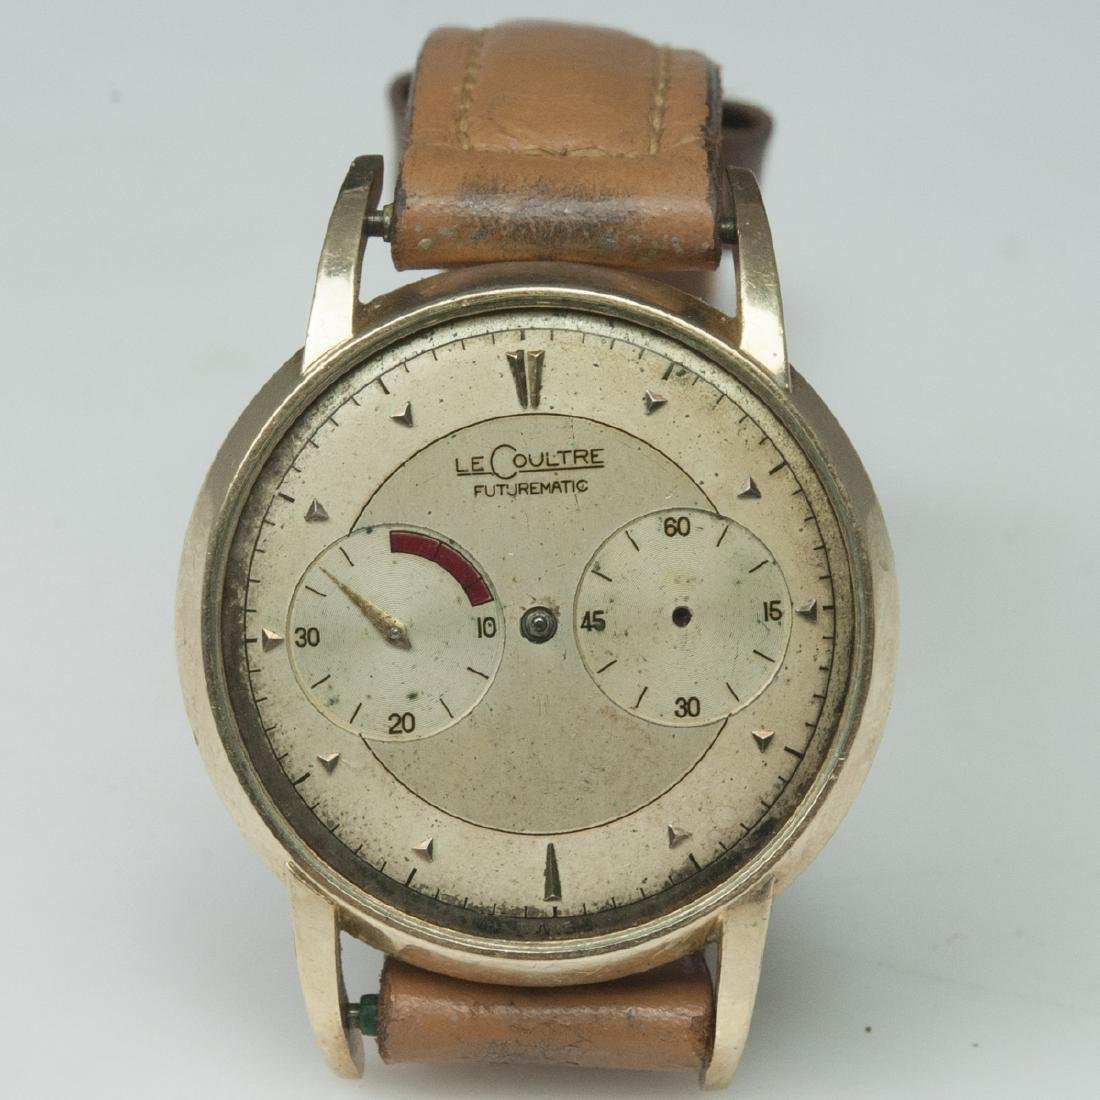 "Vintage Jaeger Lecoultre ""Futurematic"" Watch"